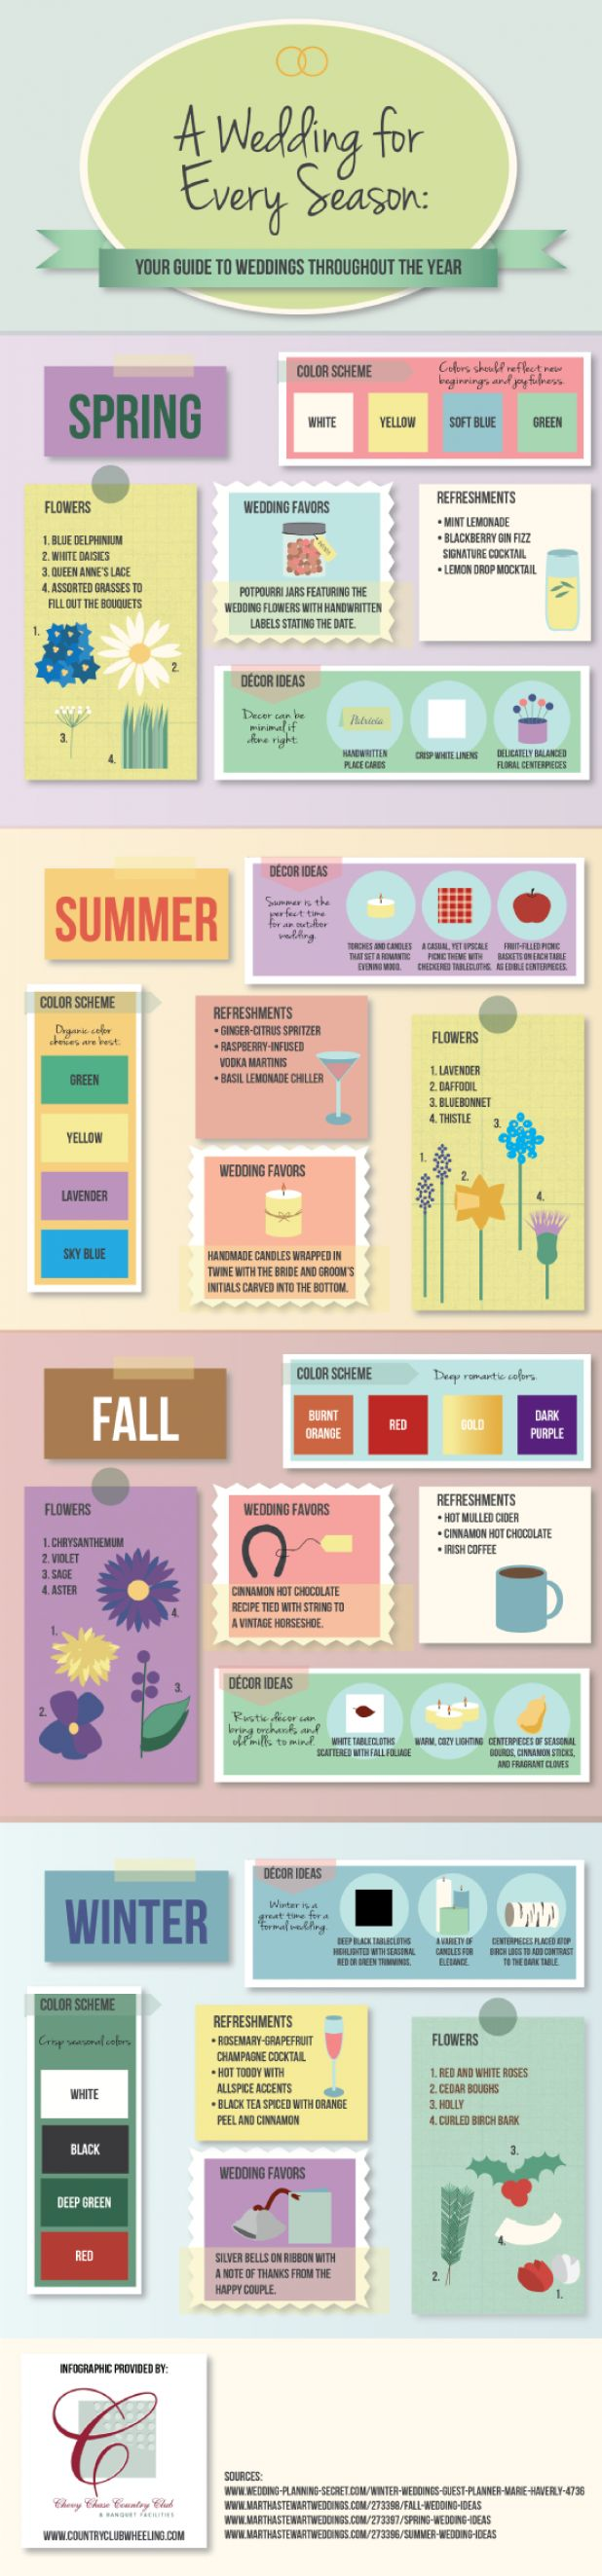 A Wedding for Every Season: Your Guide to Weddings Throughout the Year. Agree with some NOT ALL of these ideas